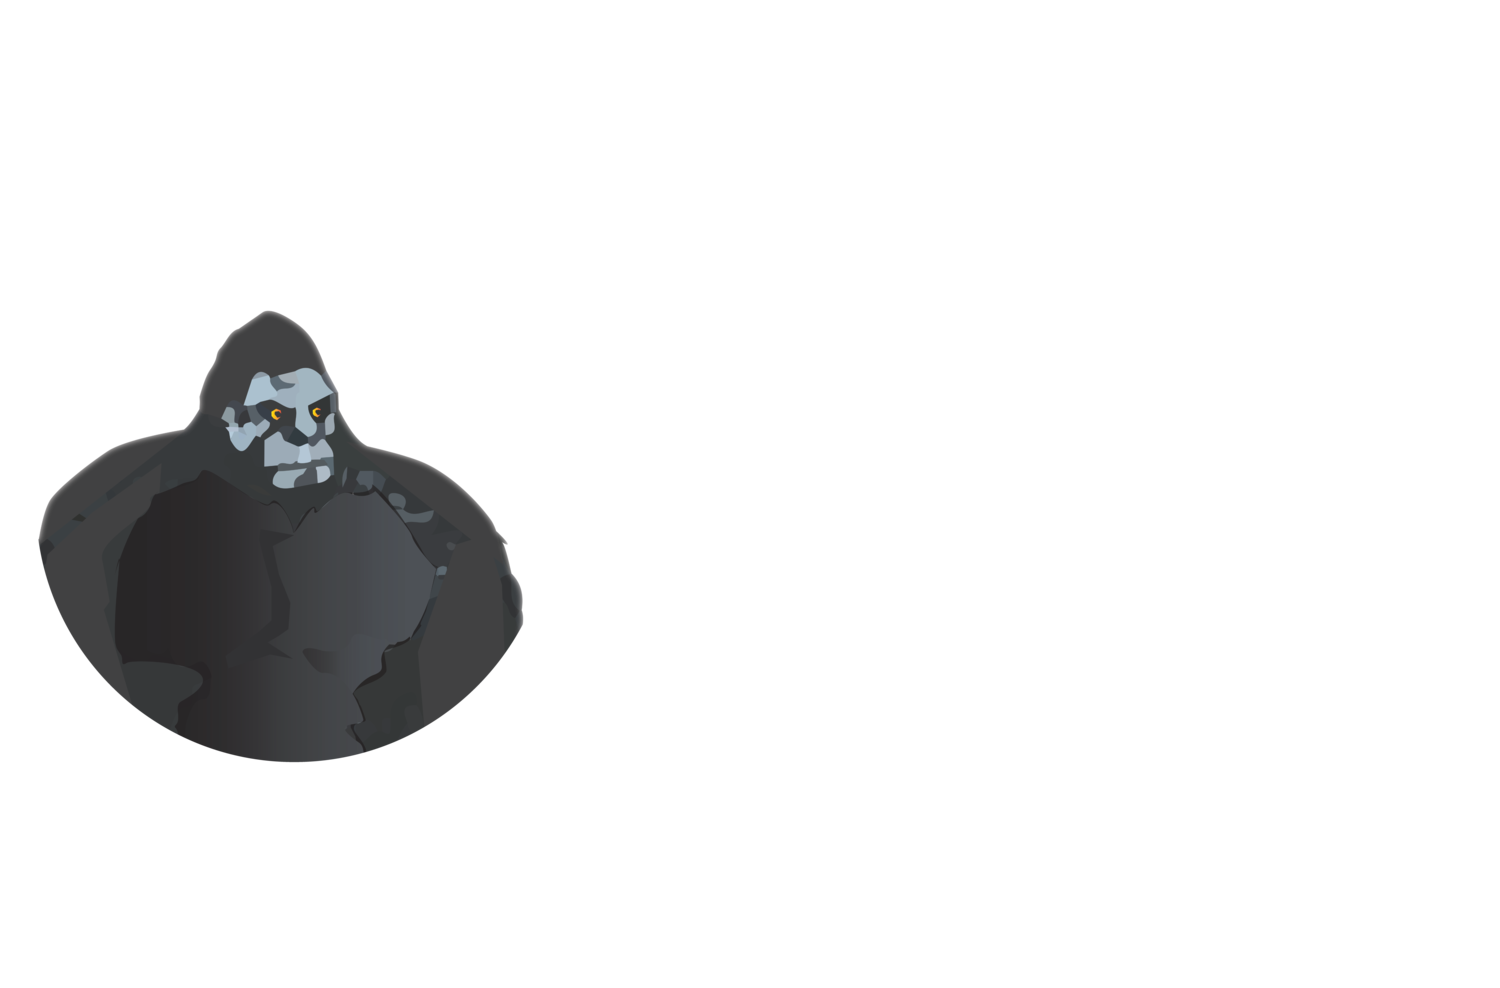 Sasquatch Lighting and Grip